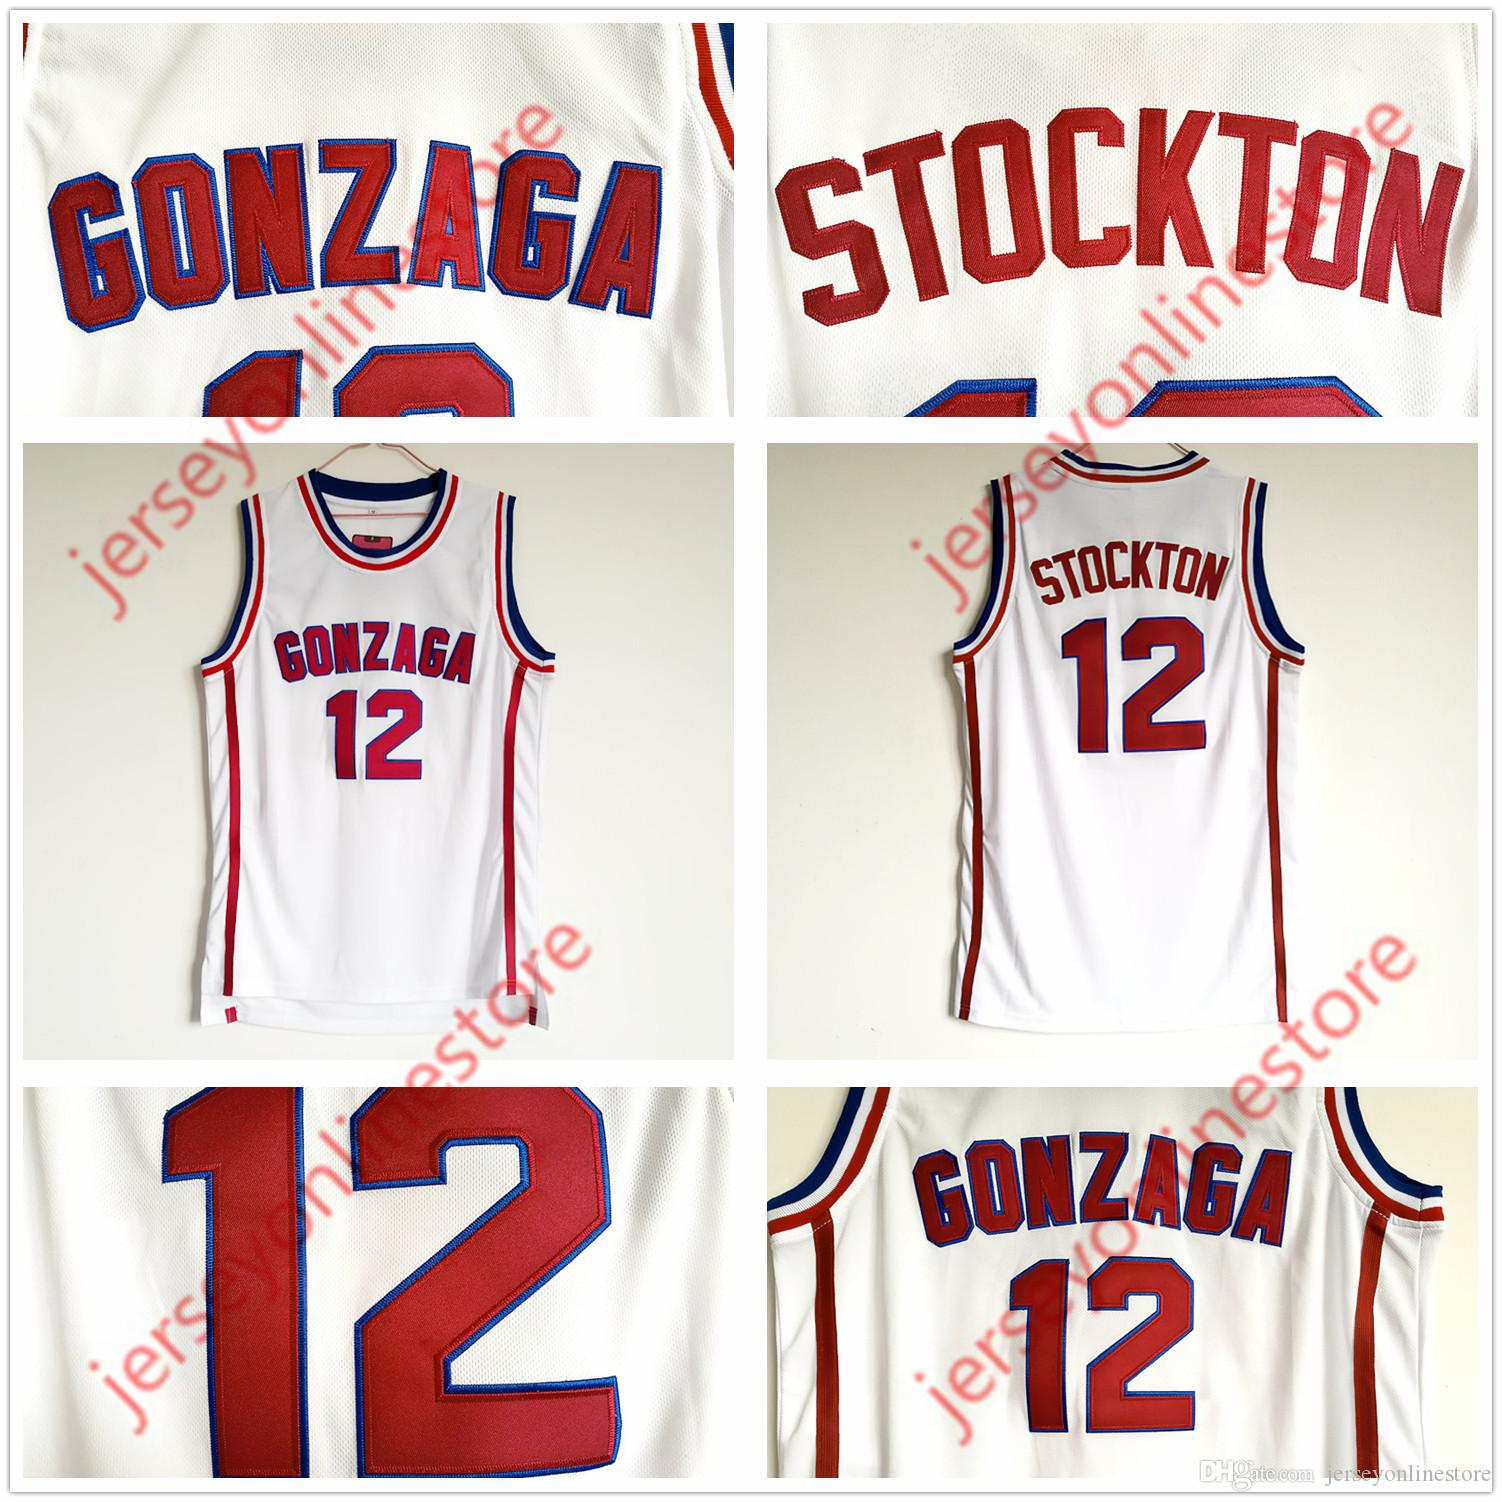 a746b1f982d7 Cheap Mens Gonzaga Bulldogs 12  John Stockton Jersey White Stitched ...